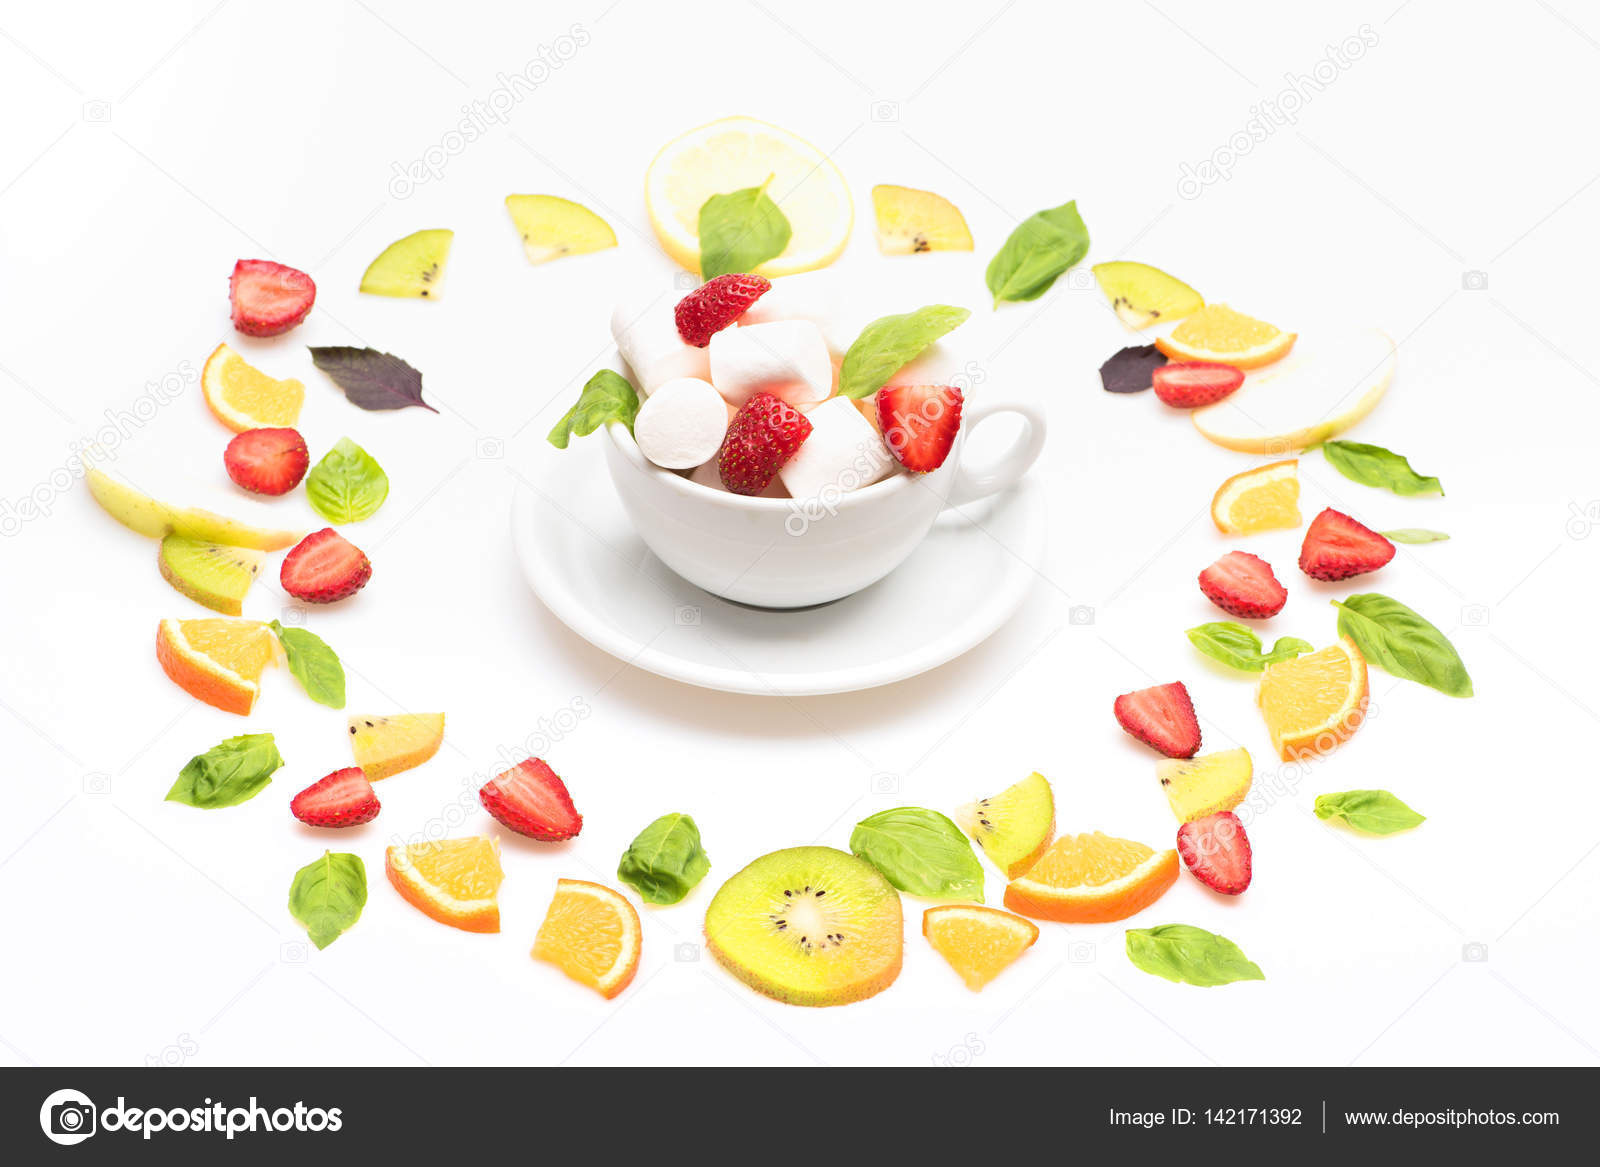 Marshmallows And Colorful Fruit Mix Dessert Isolated On